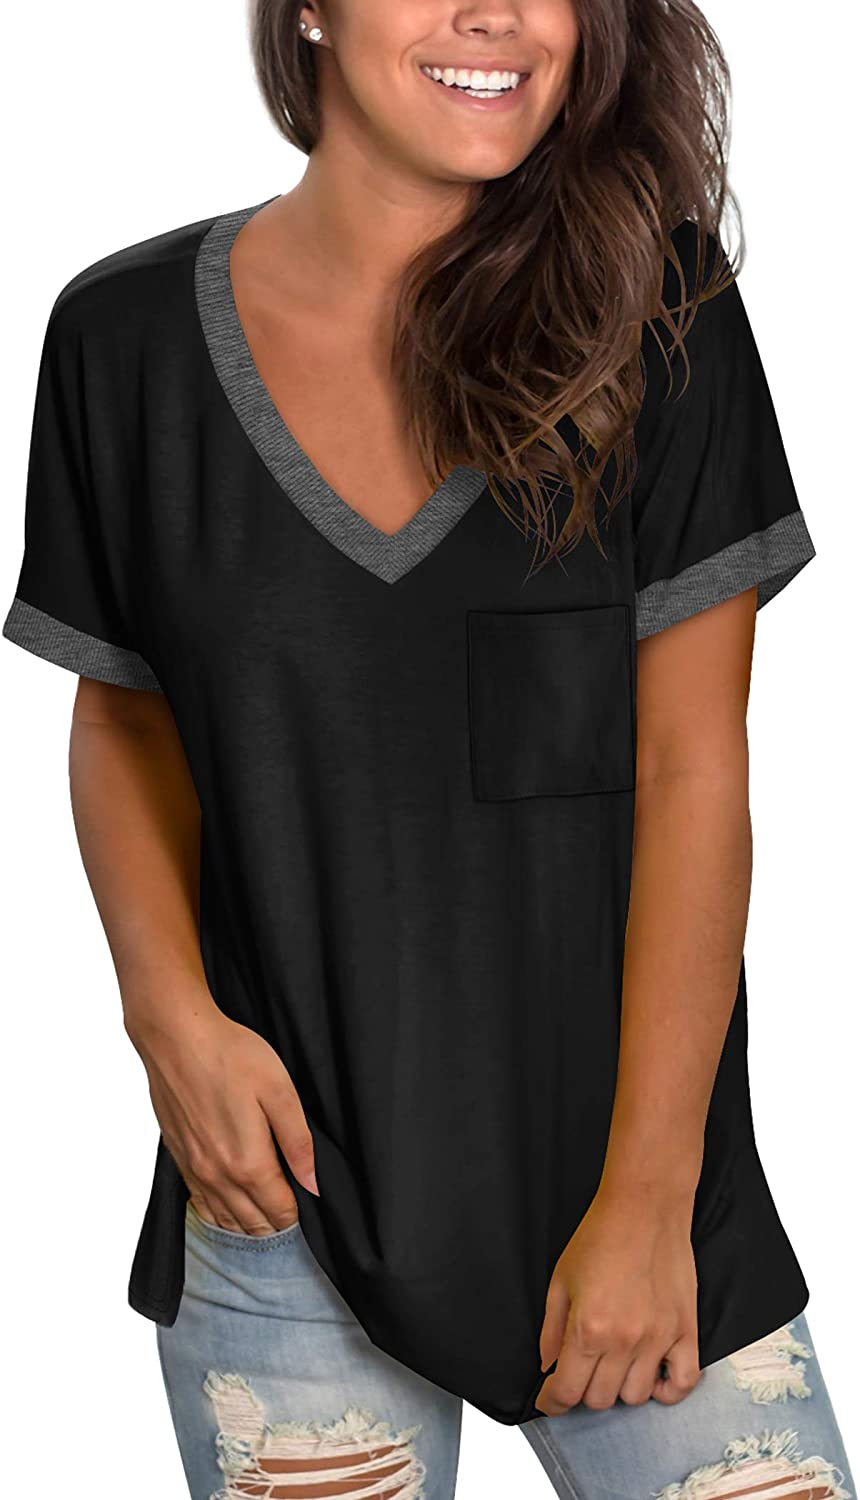 NSQTBA Womens Tshirts V Neck Loose Fit Casual Summer Tops with Pocket: Clothing